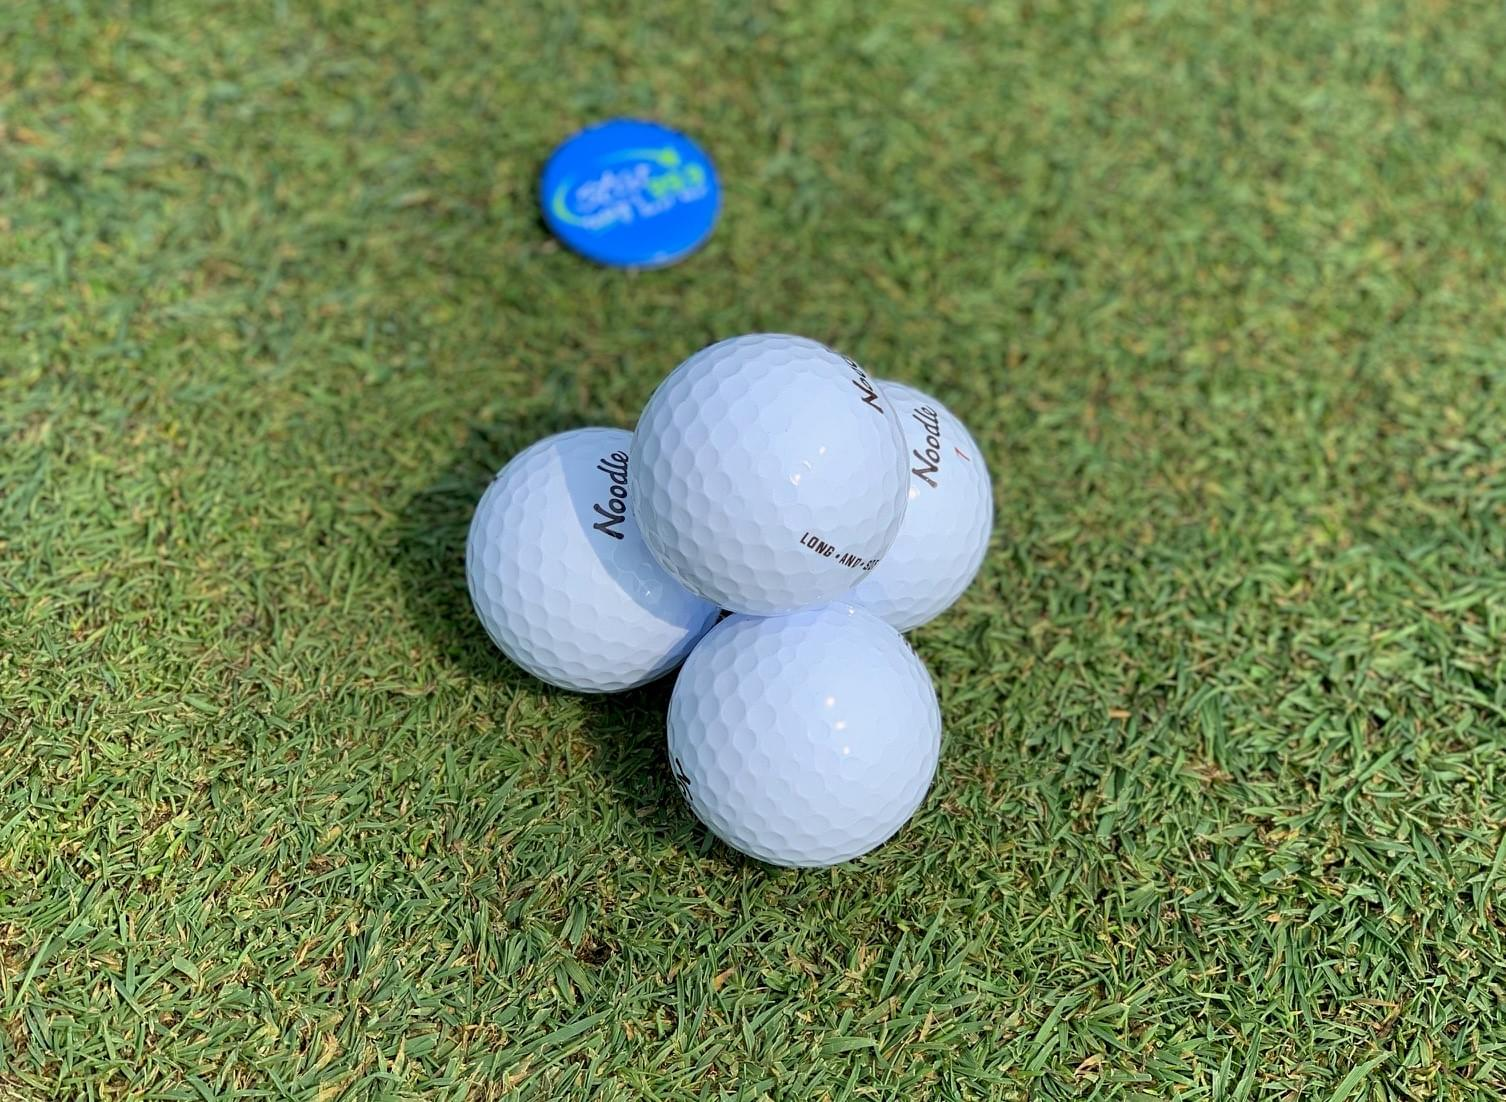 MUNDANE MYSTERIES: Why do golf balls have dimples in them?